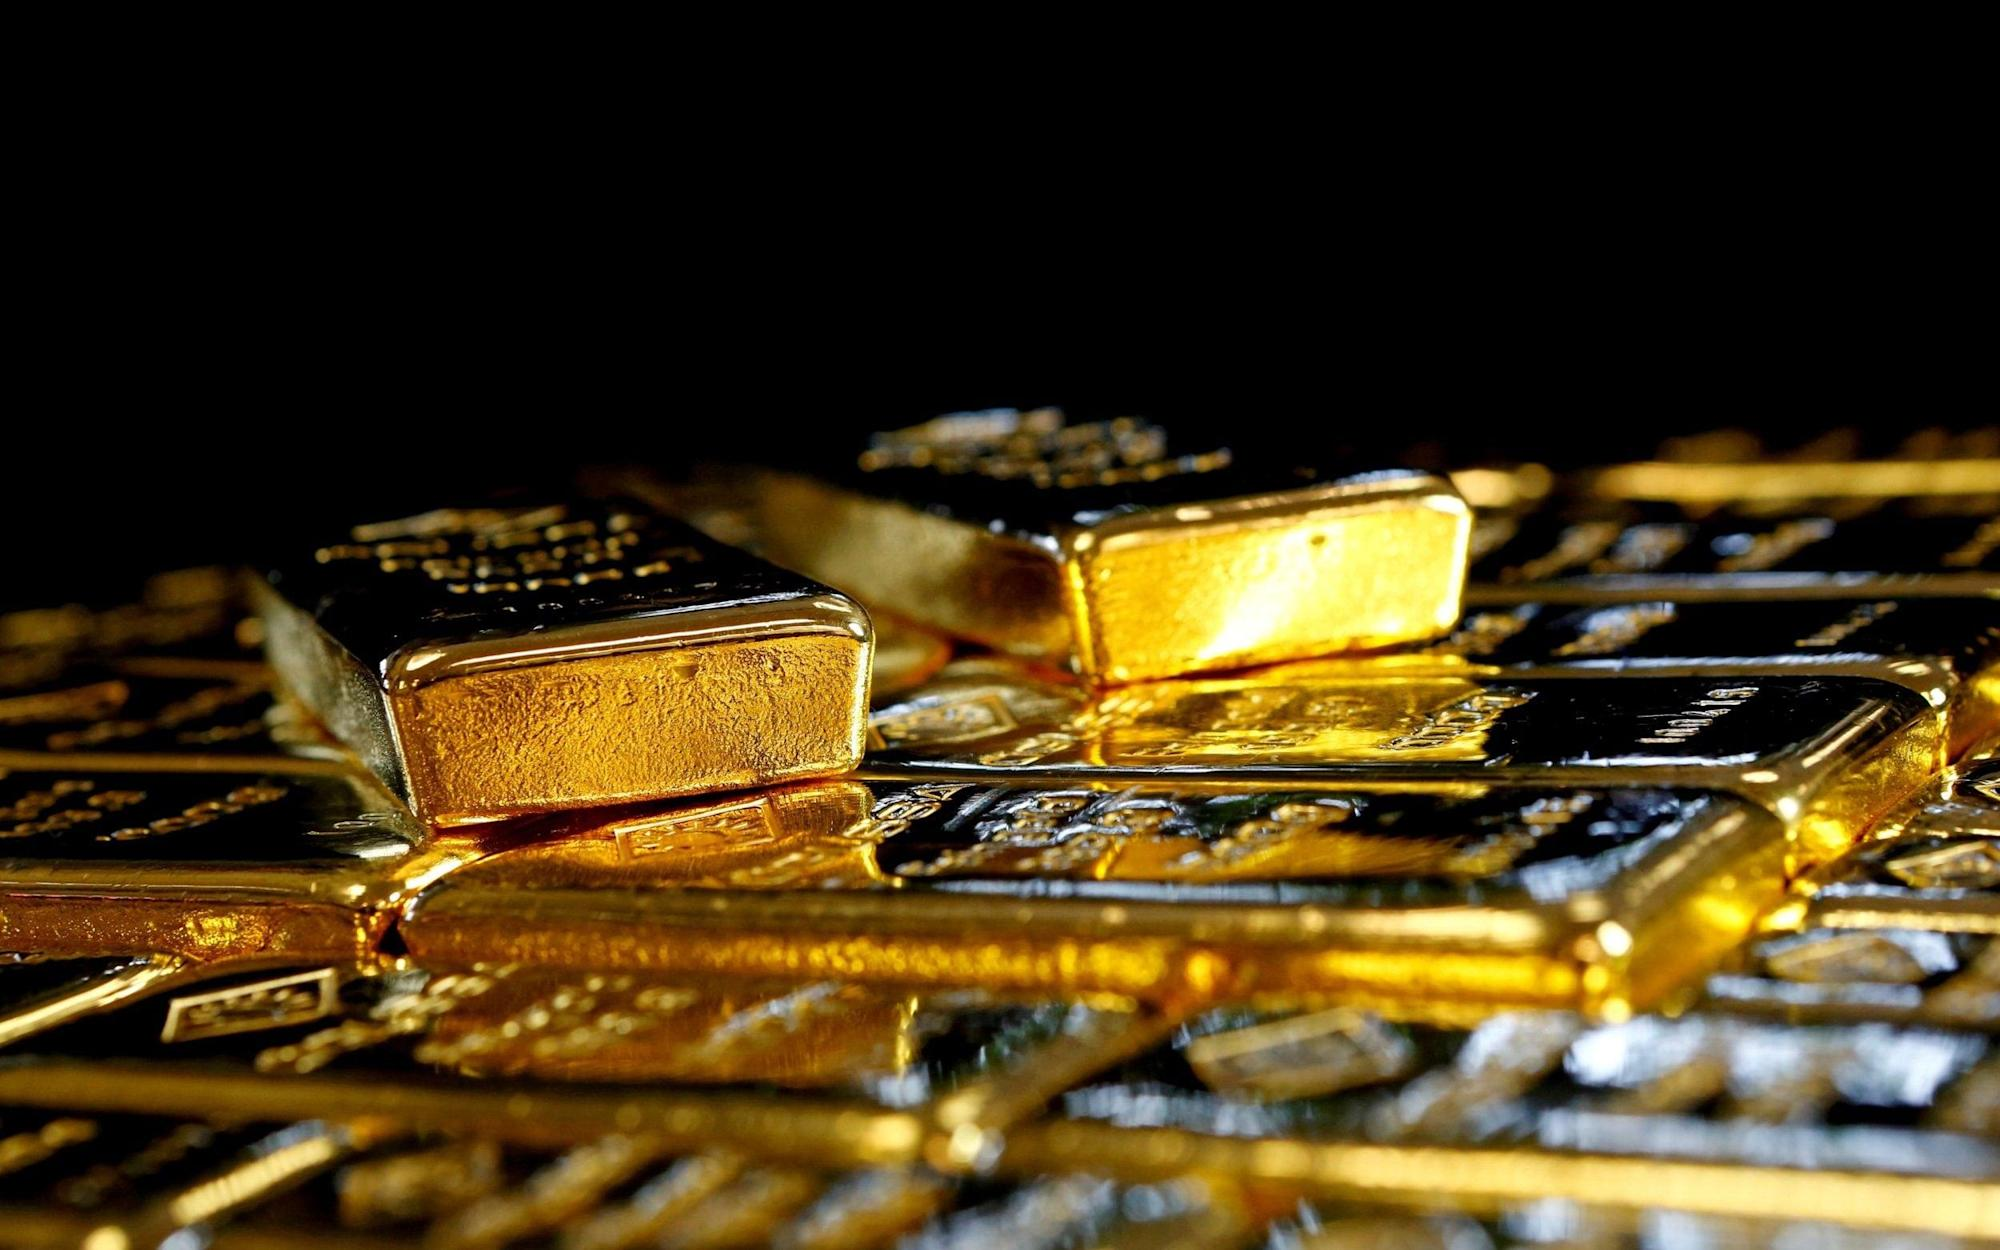 Zimbabwe mining official took gold bars by 'accidentally picking up wrong handbag'